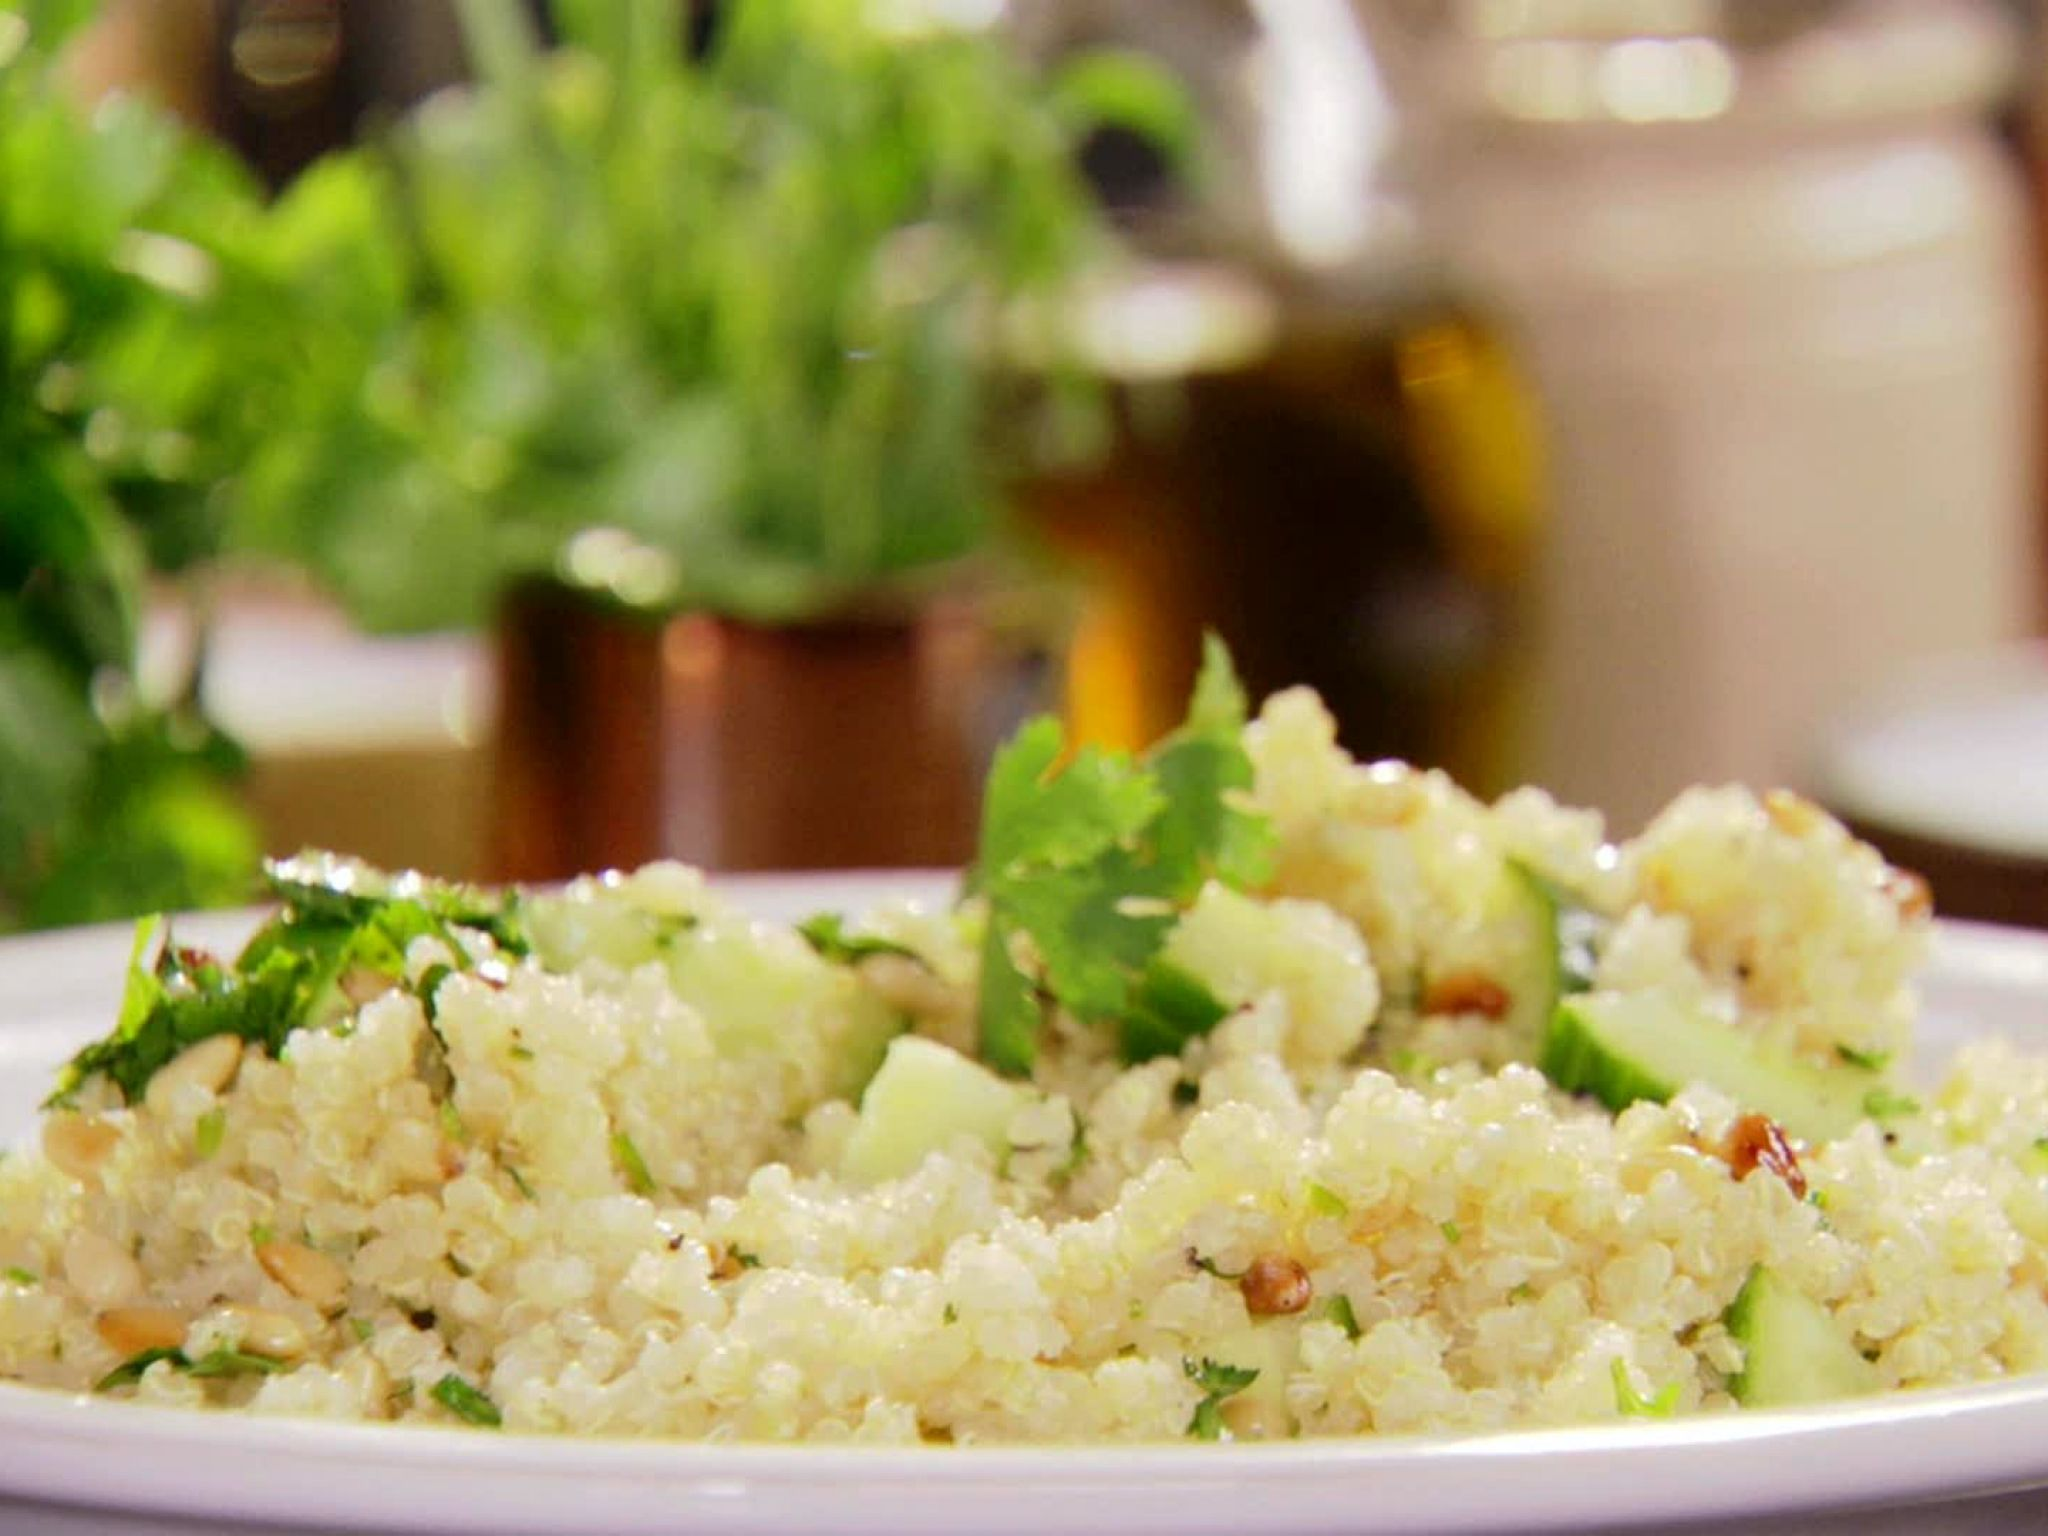 Quickie quinoa salad recipe quinoa salad recipes quinoa salad quickie quinoa salad recipe quinoa salad recipes quinoa salad and quinoa forumfinder Image collections